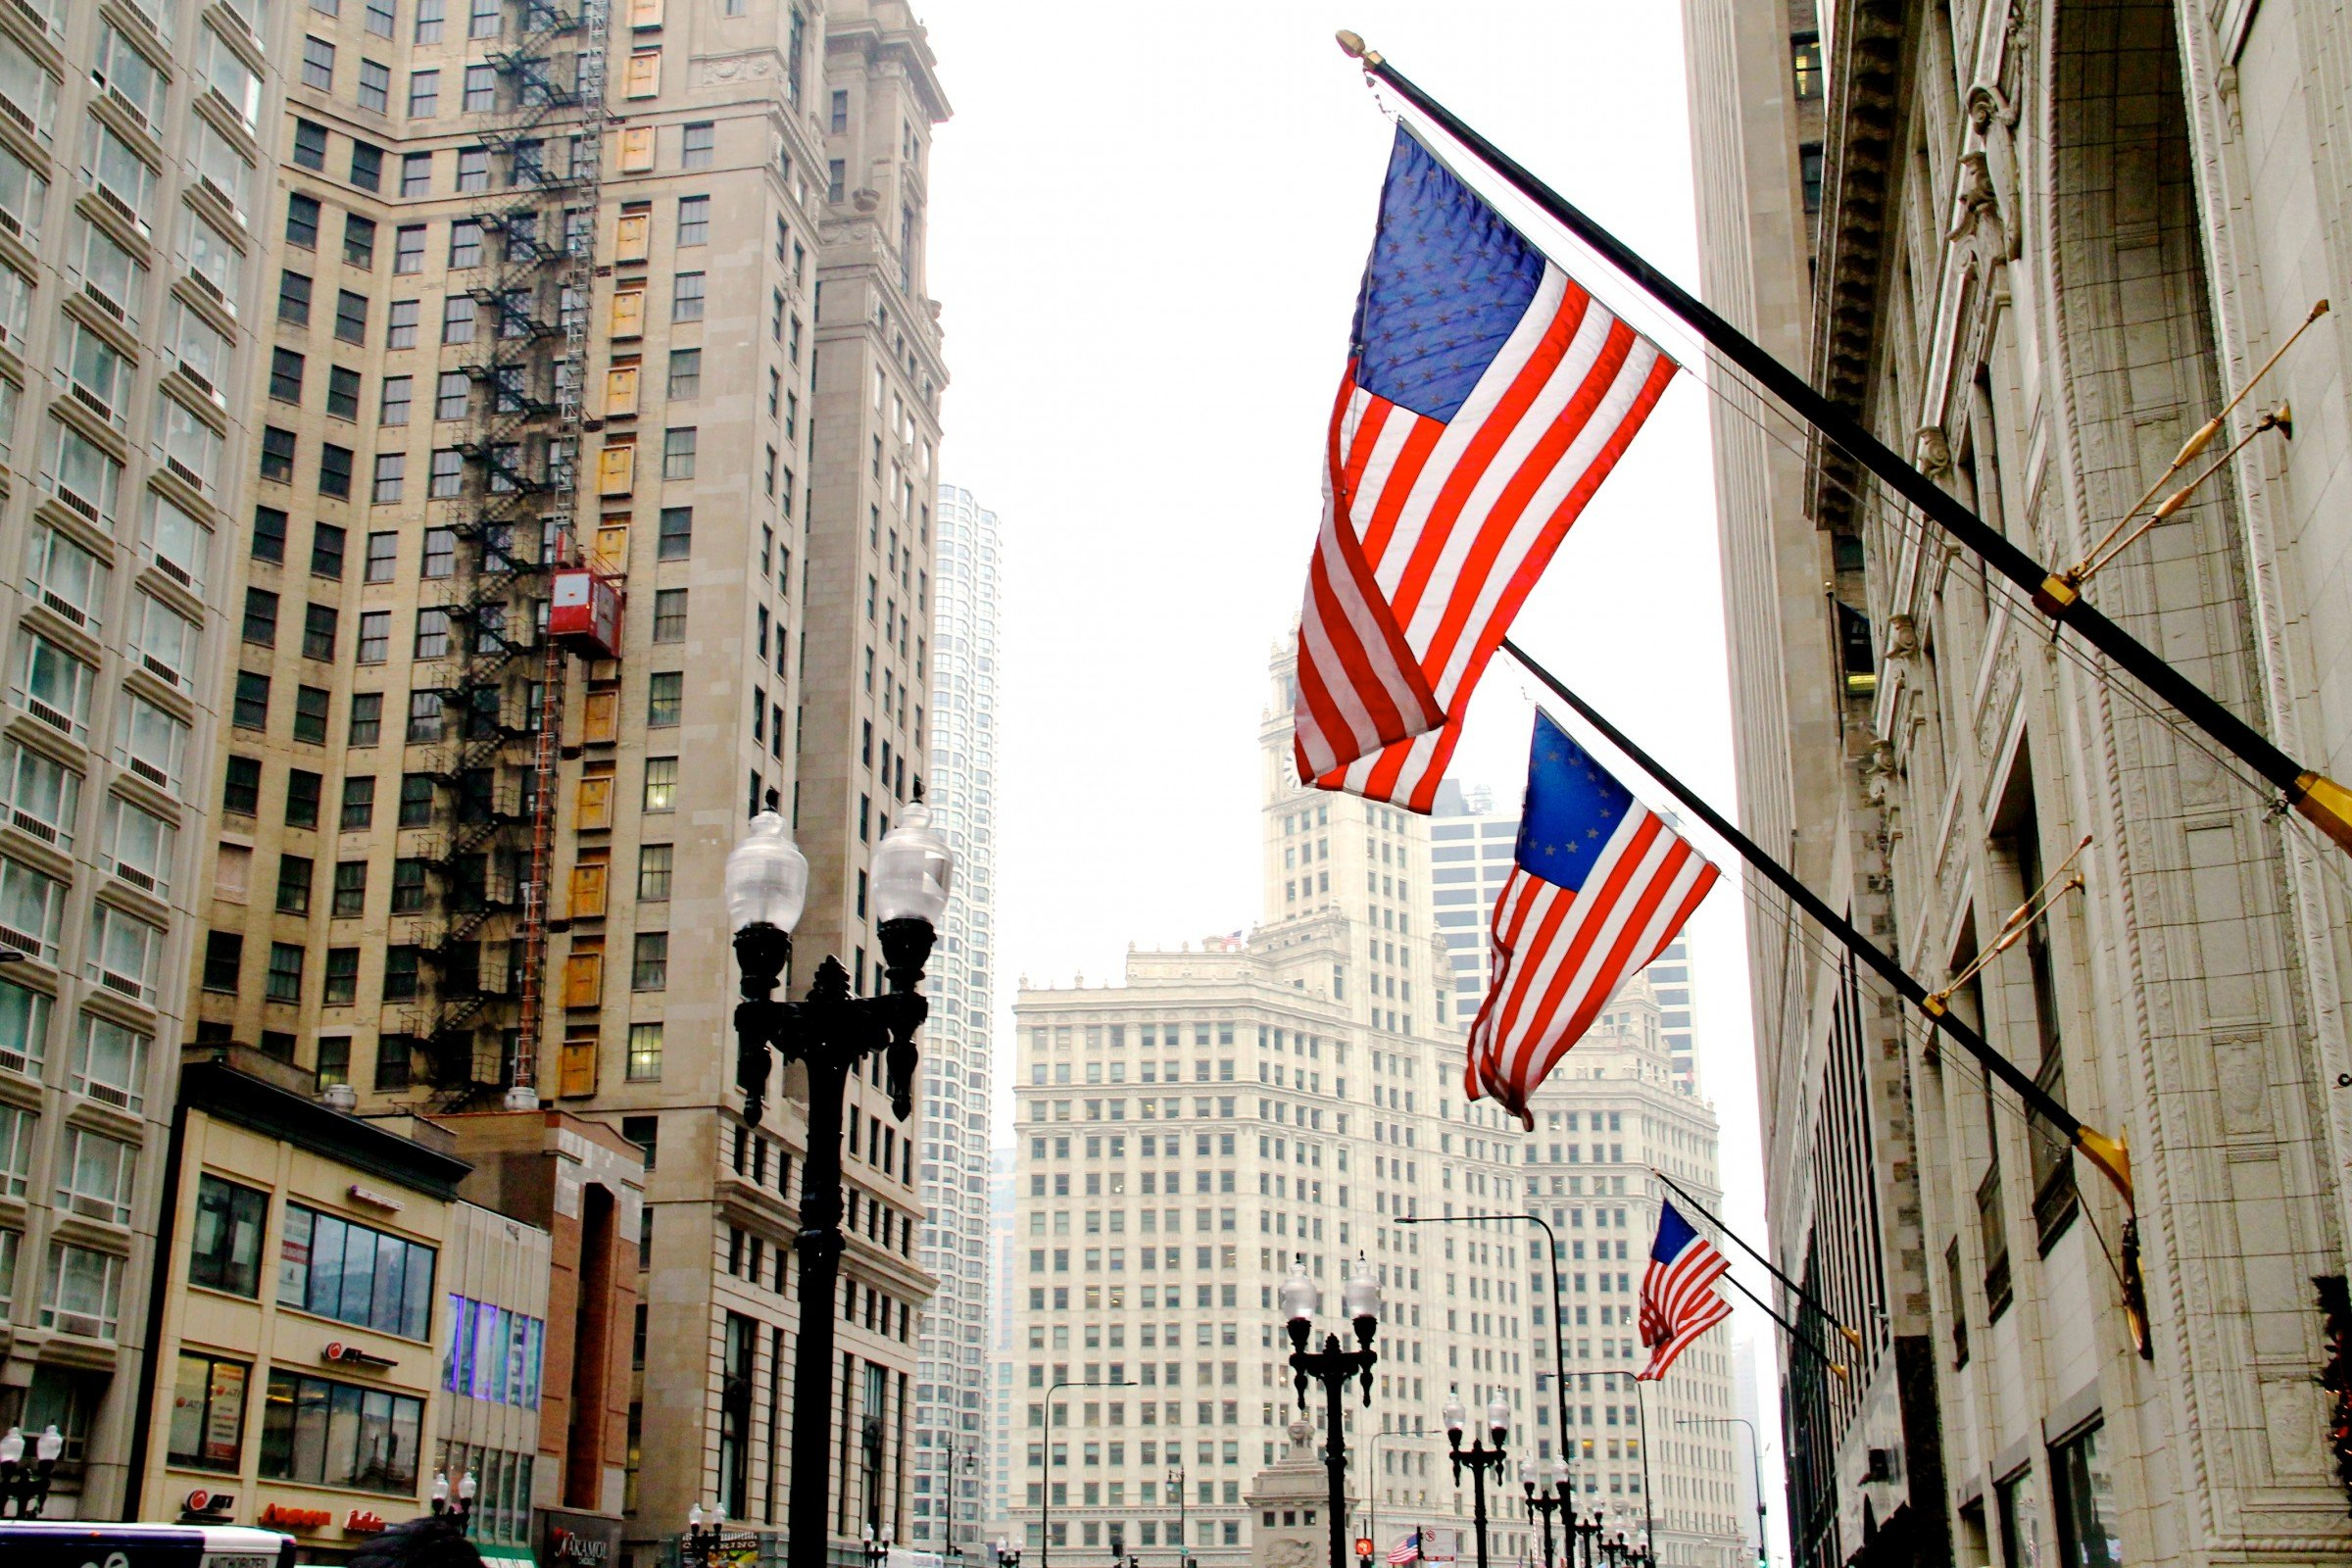 city building side. American Flags On Side Of Building In City Free Stock Photo